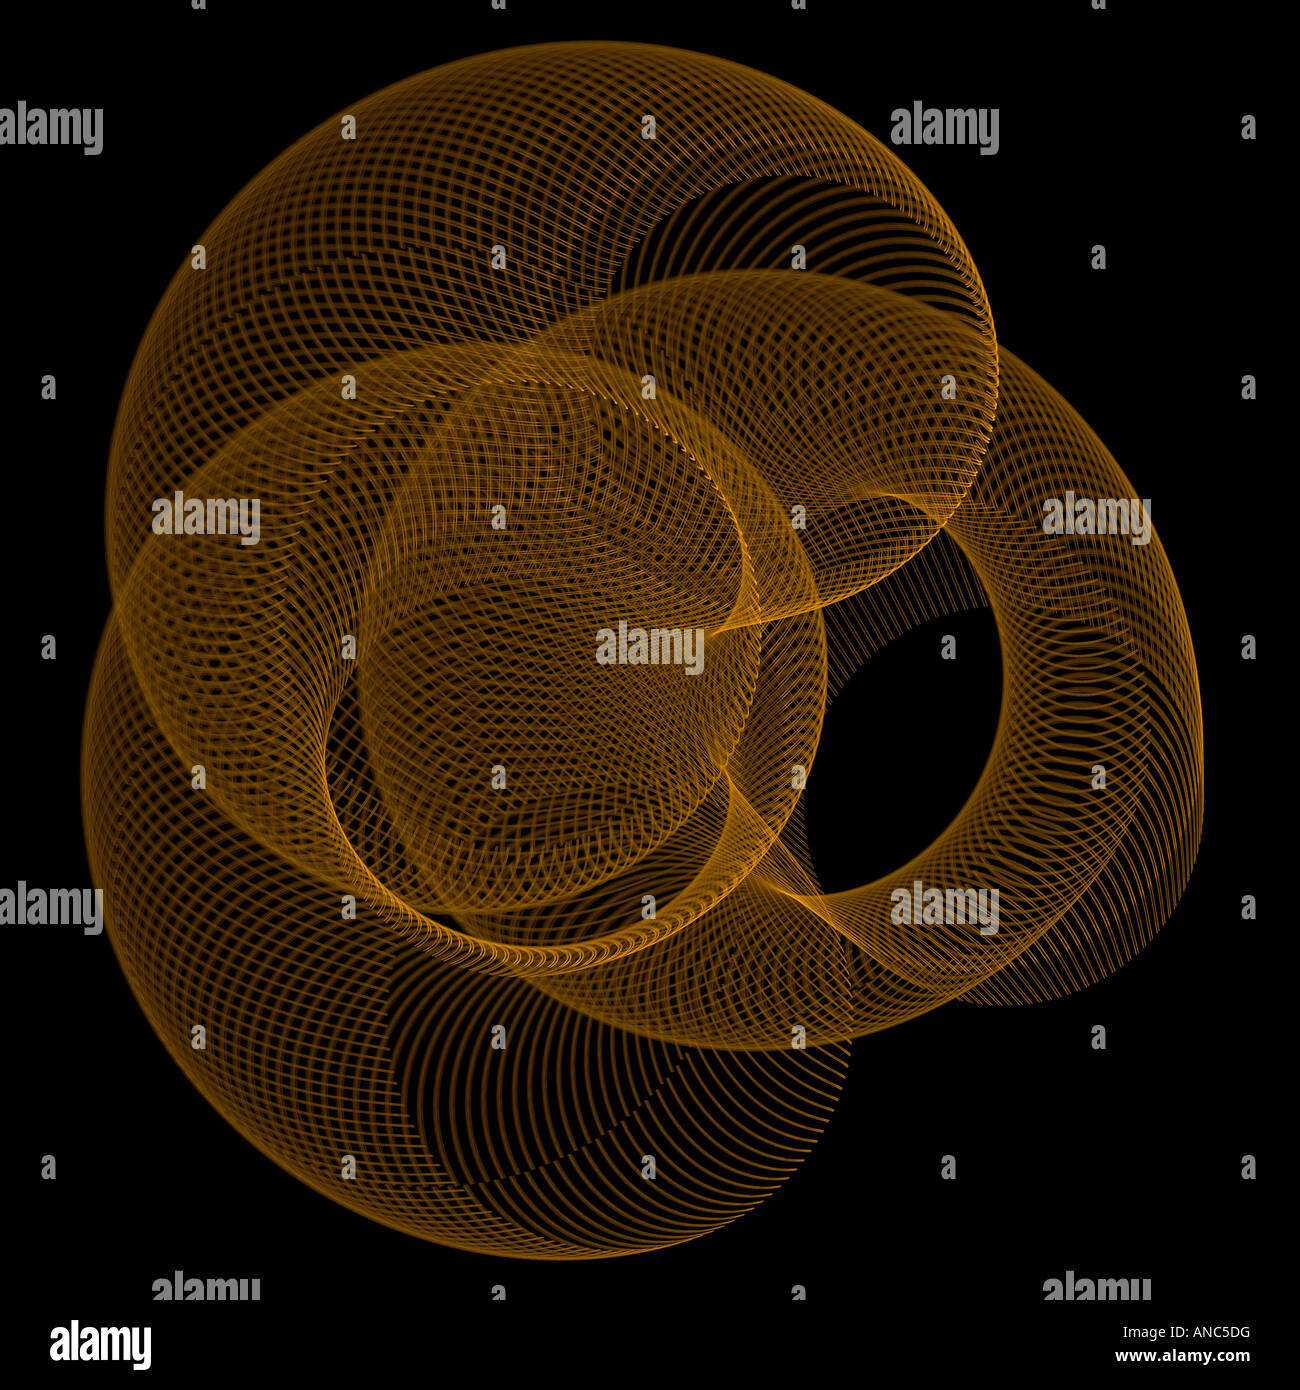 Abstract frattale che assomiglia a un twisted slinky giocattolo mesh Foto Stock